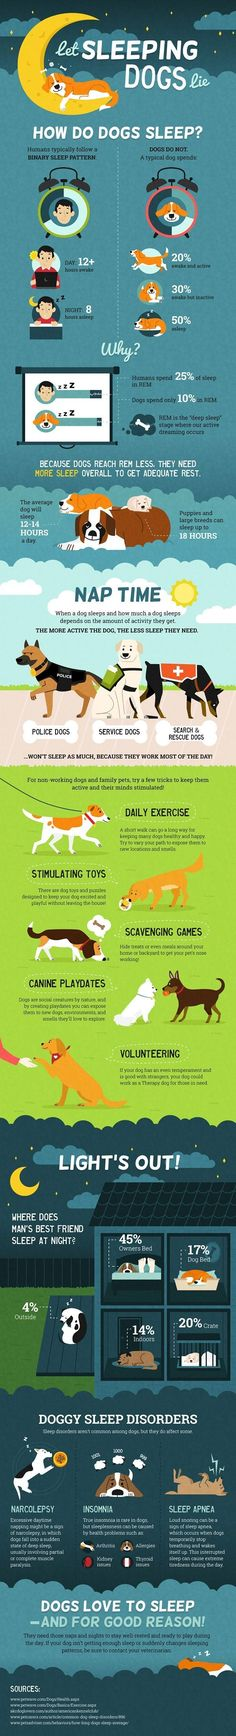 Infographic: Is Your Dog Sleeping A Little Too Much?